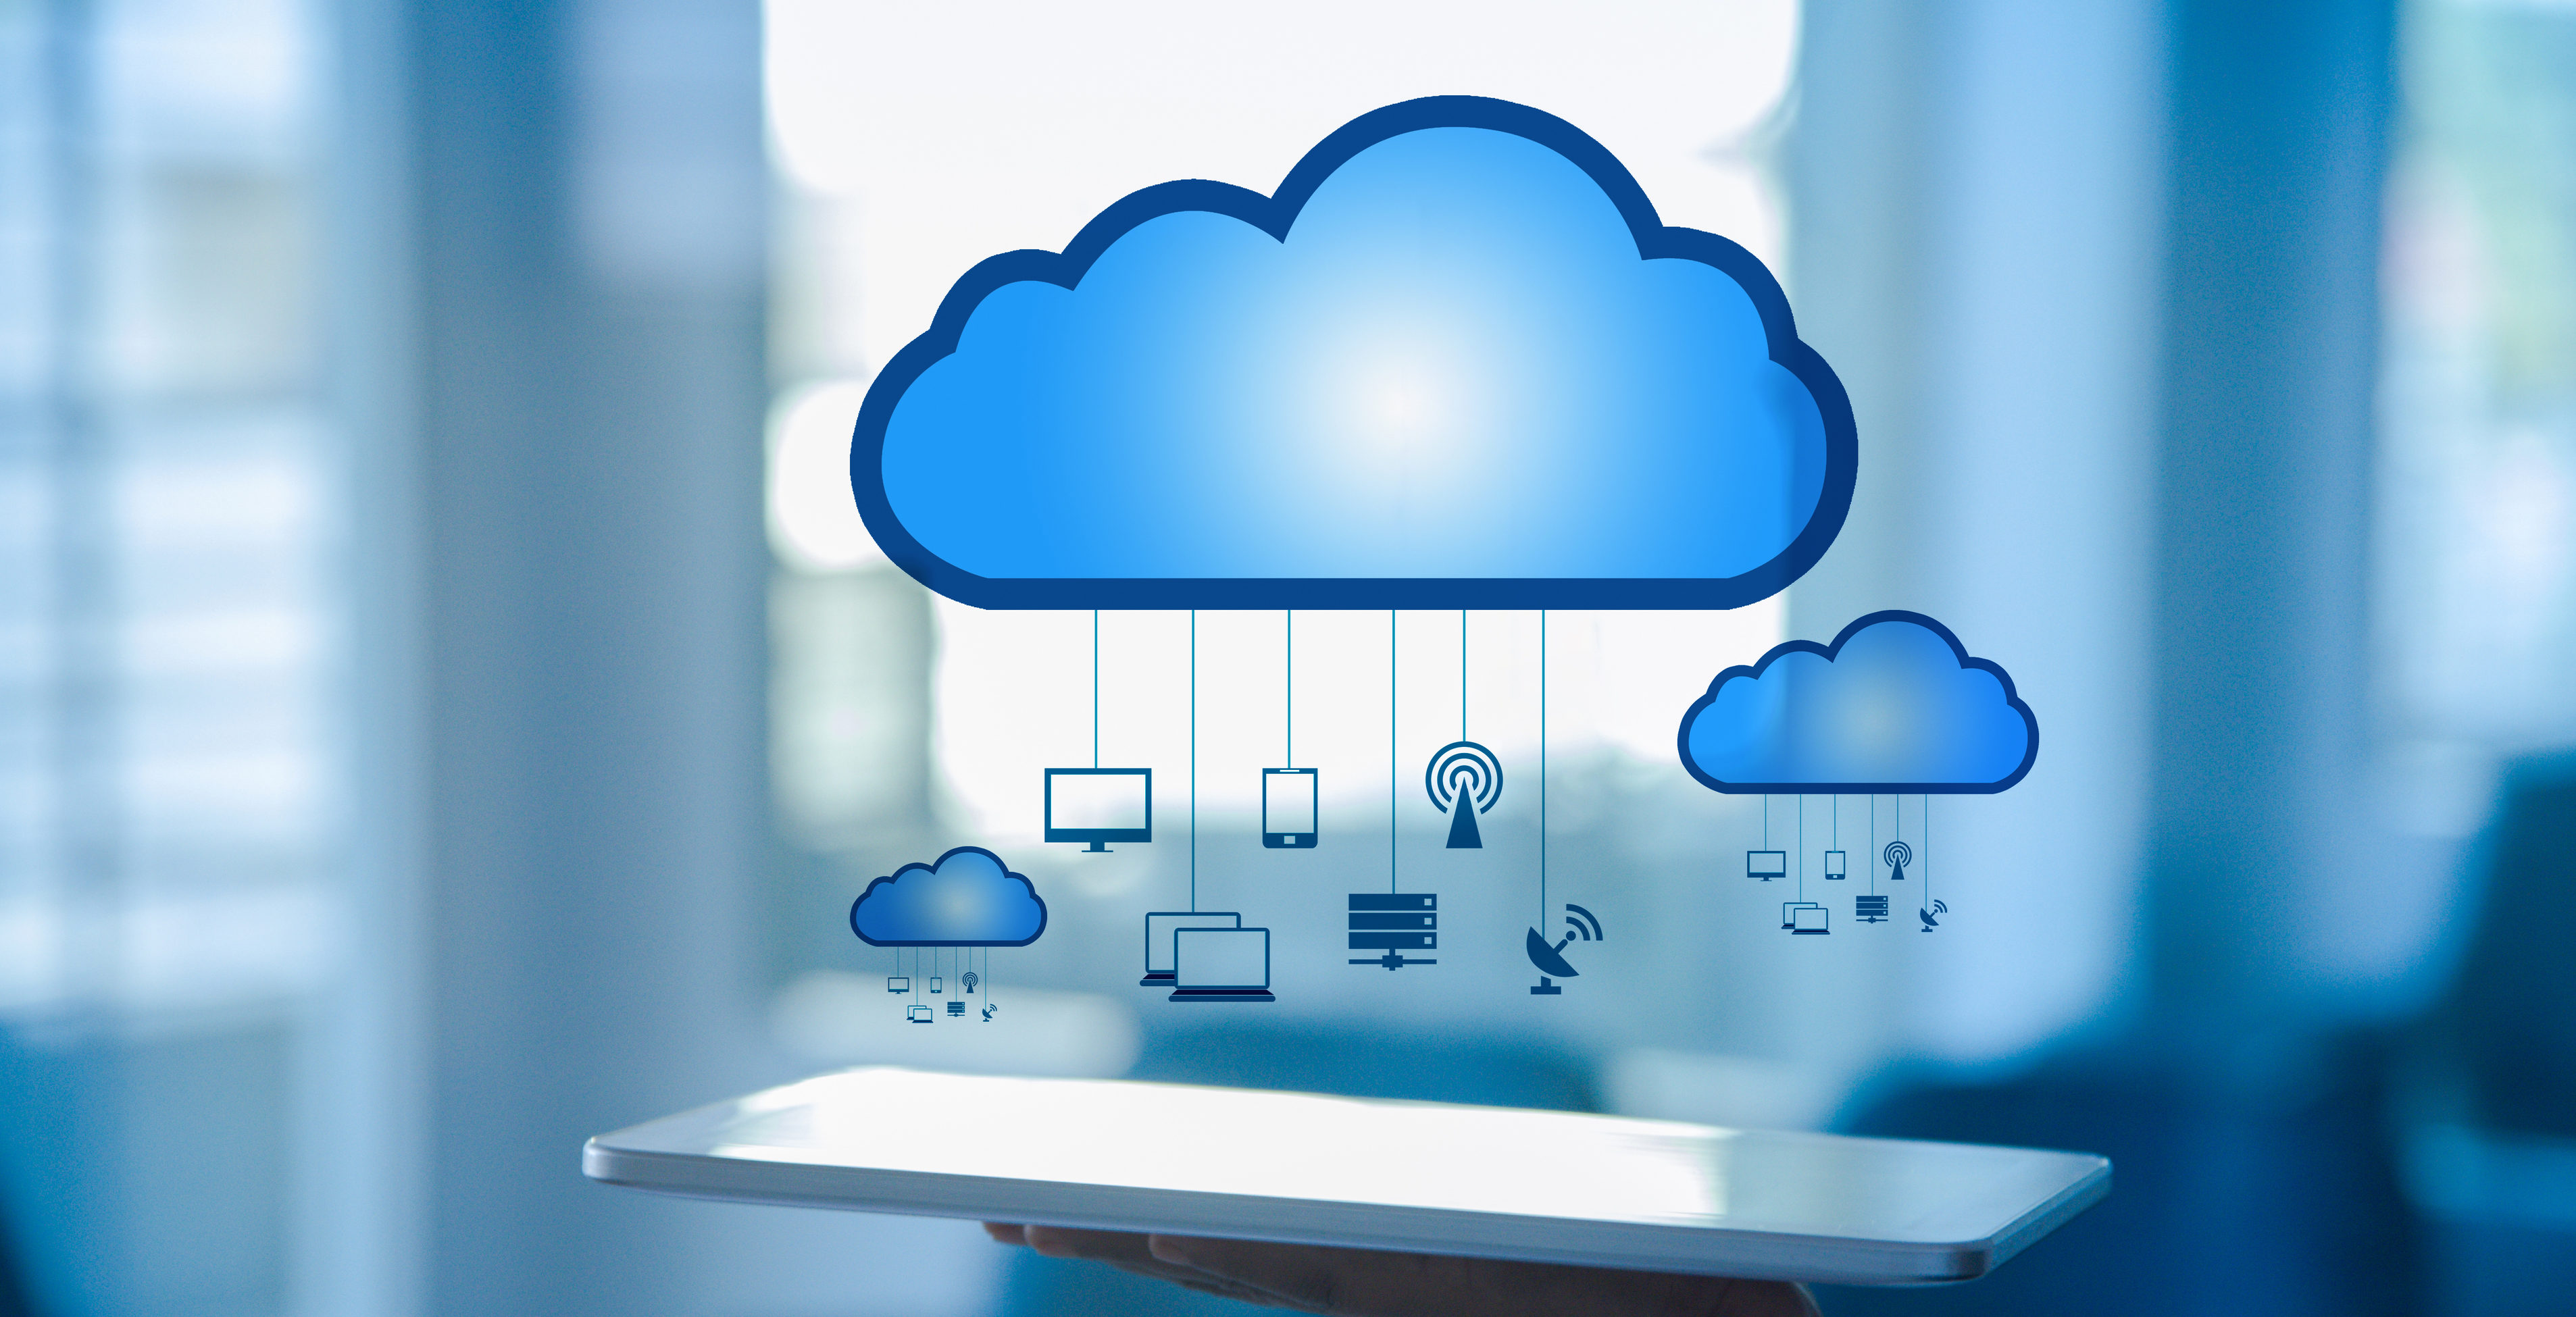 Information storage and cloud technologies for online casinos